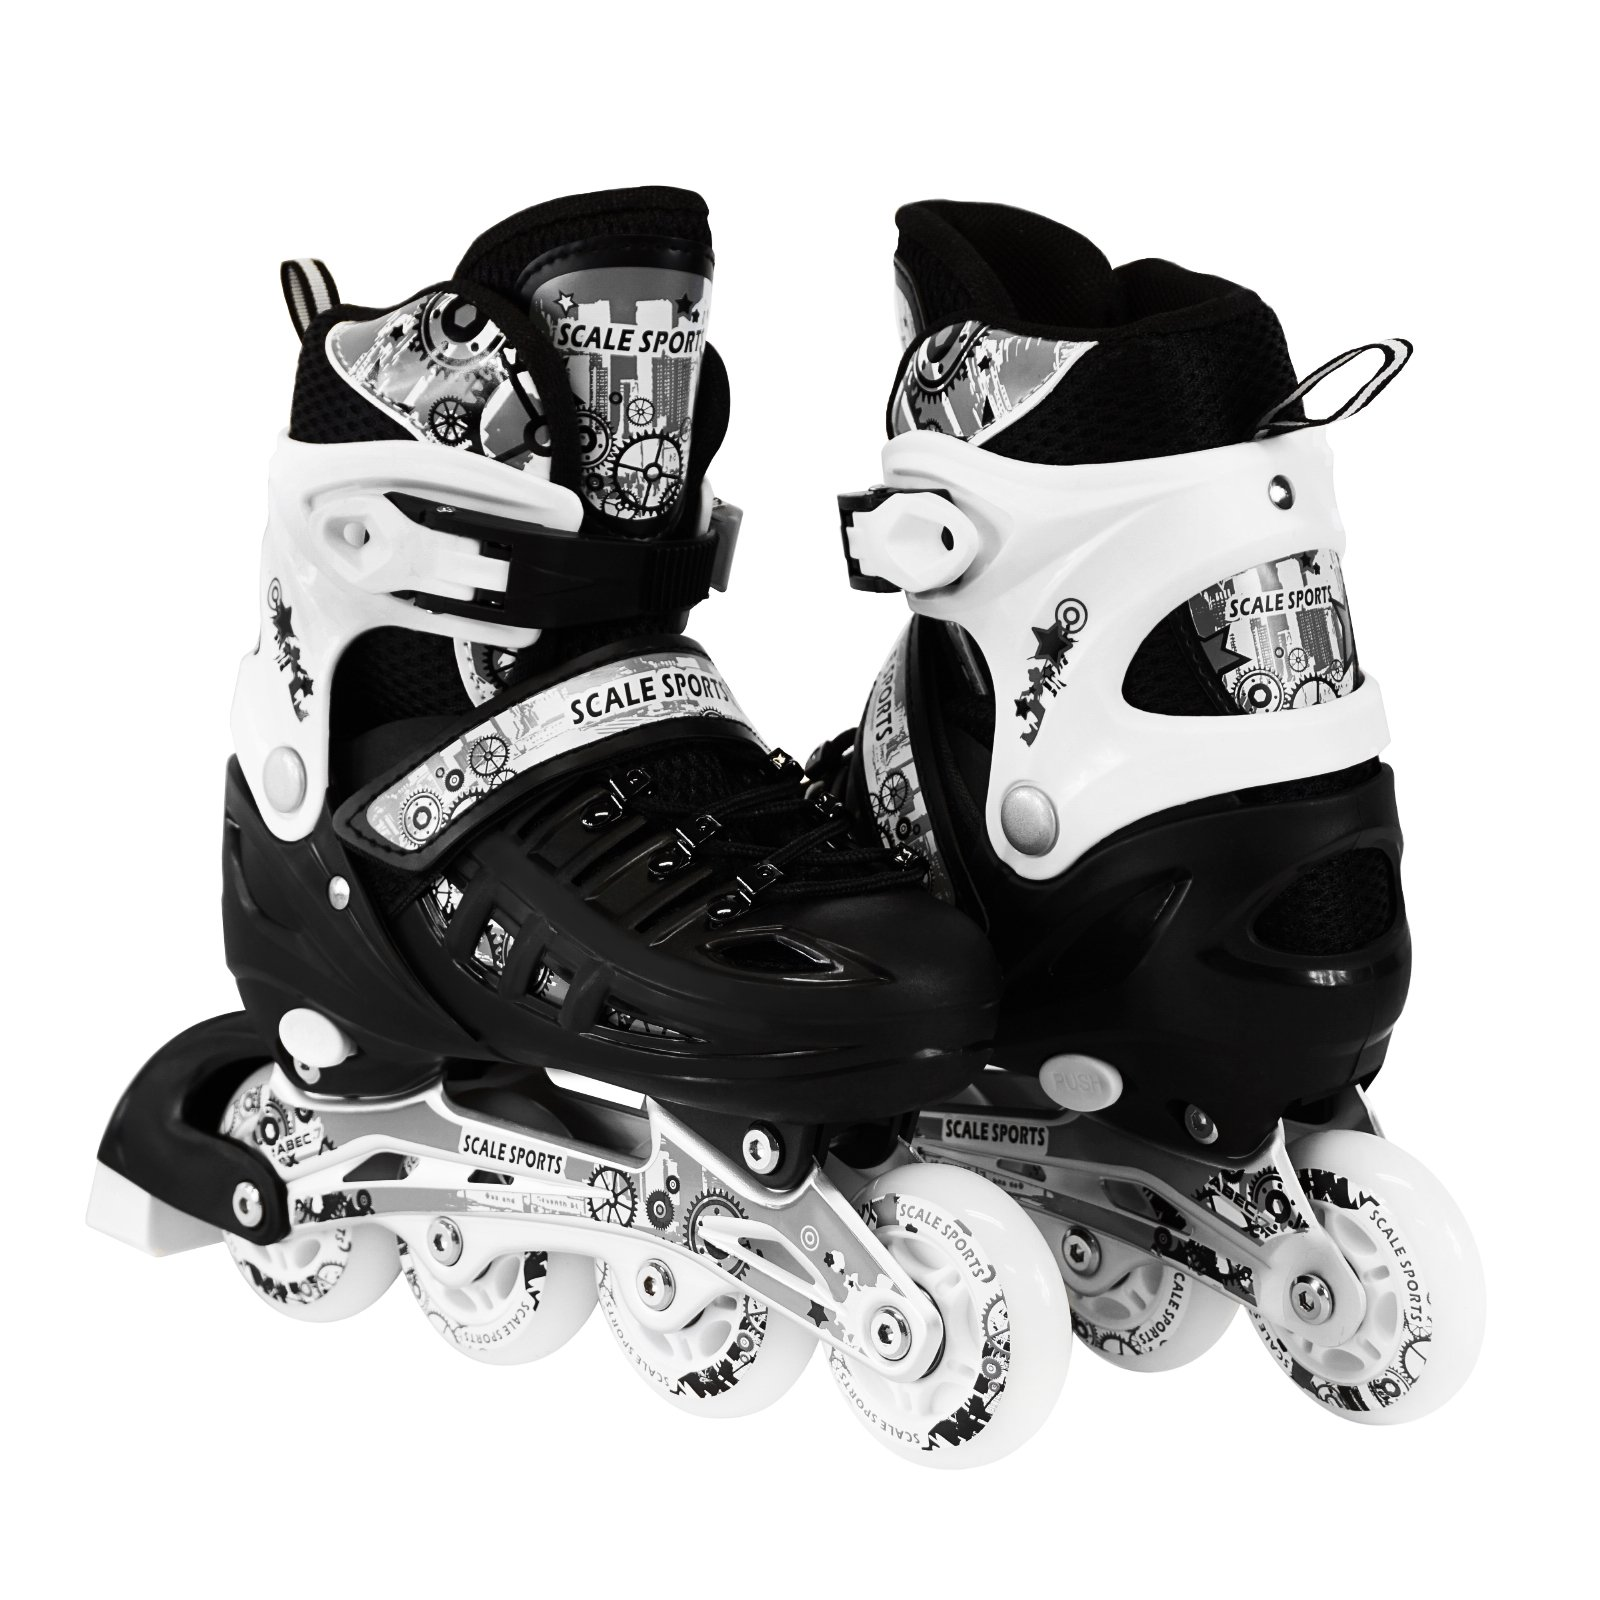 Scale Sports Kids Adjustable Inline Roller Blade Skates Black Small Sizes Safe Durable Outdoor Featuring Illuminating Front Wheels 905